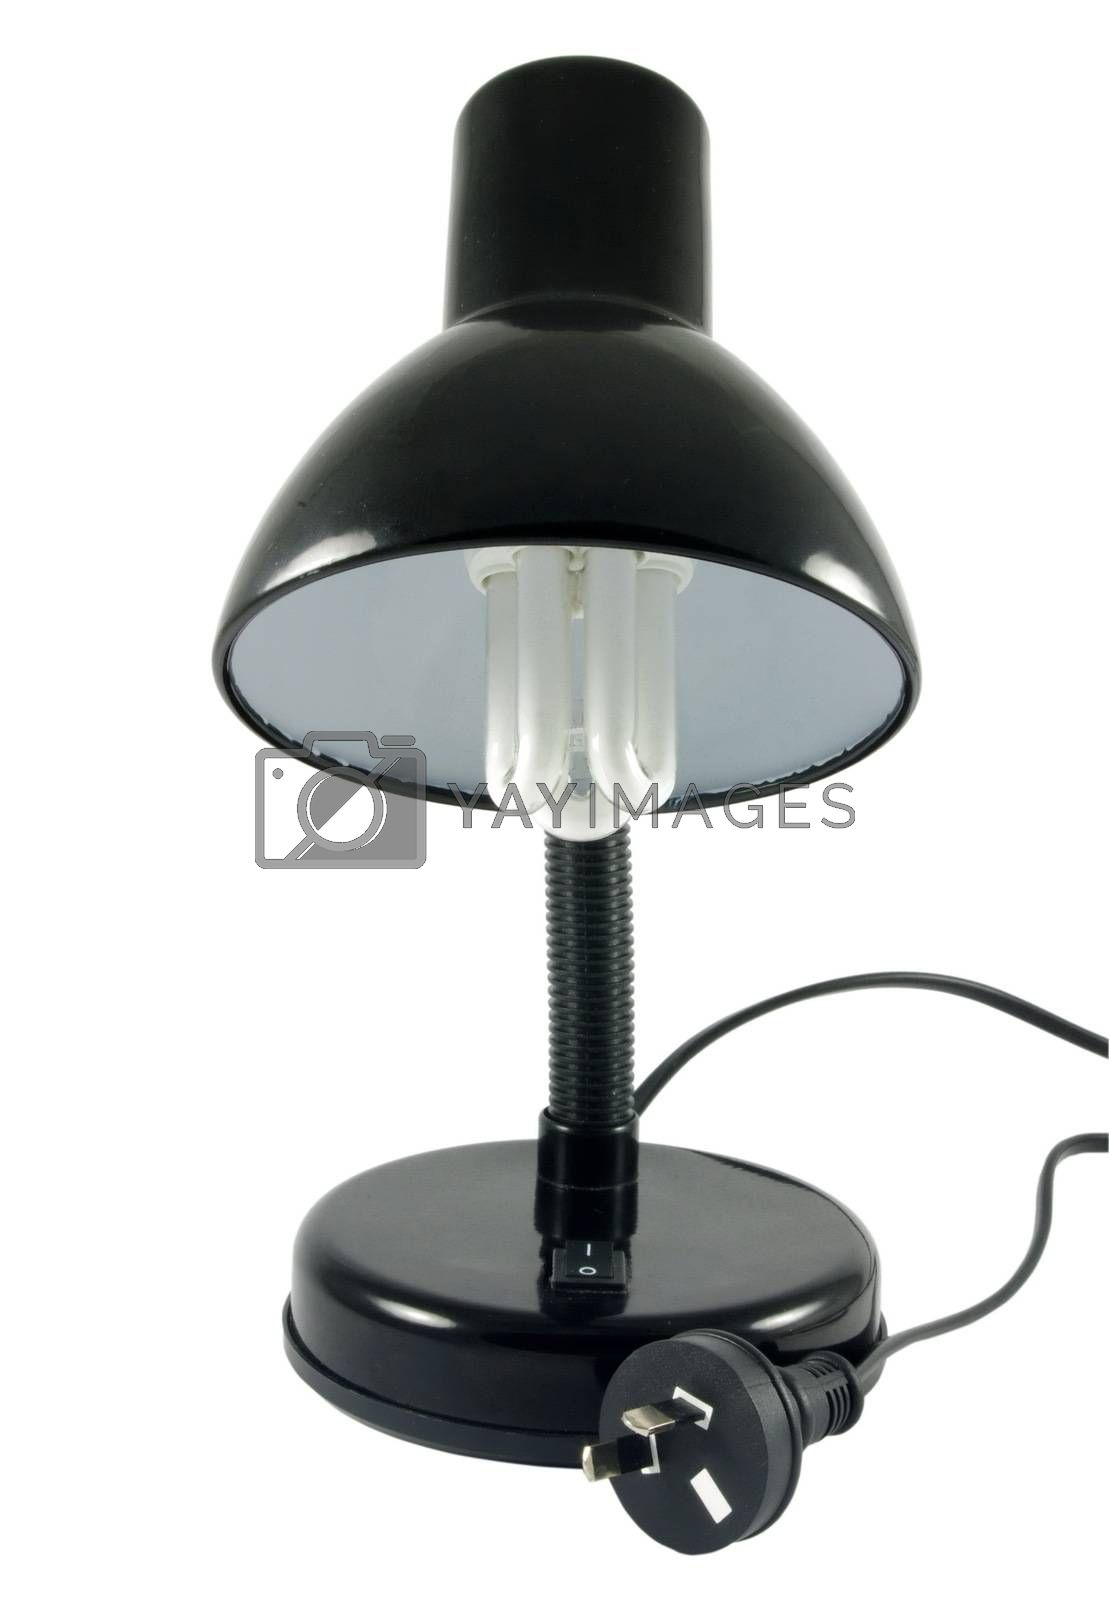 Black lamp with economic bulb over white surface